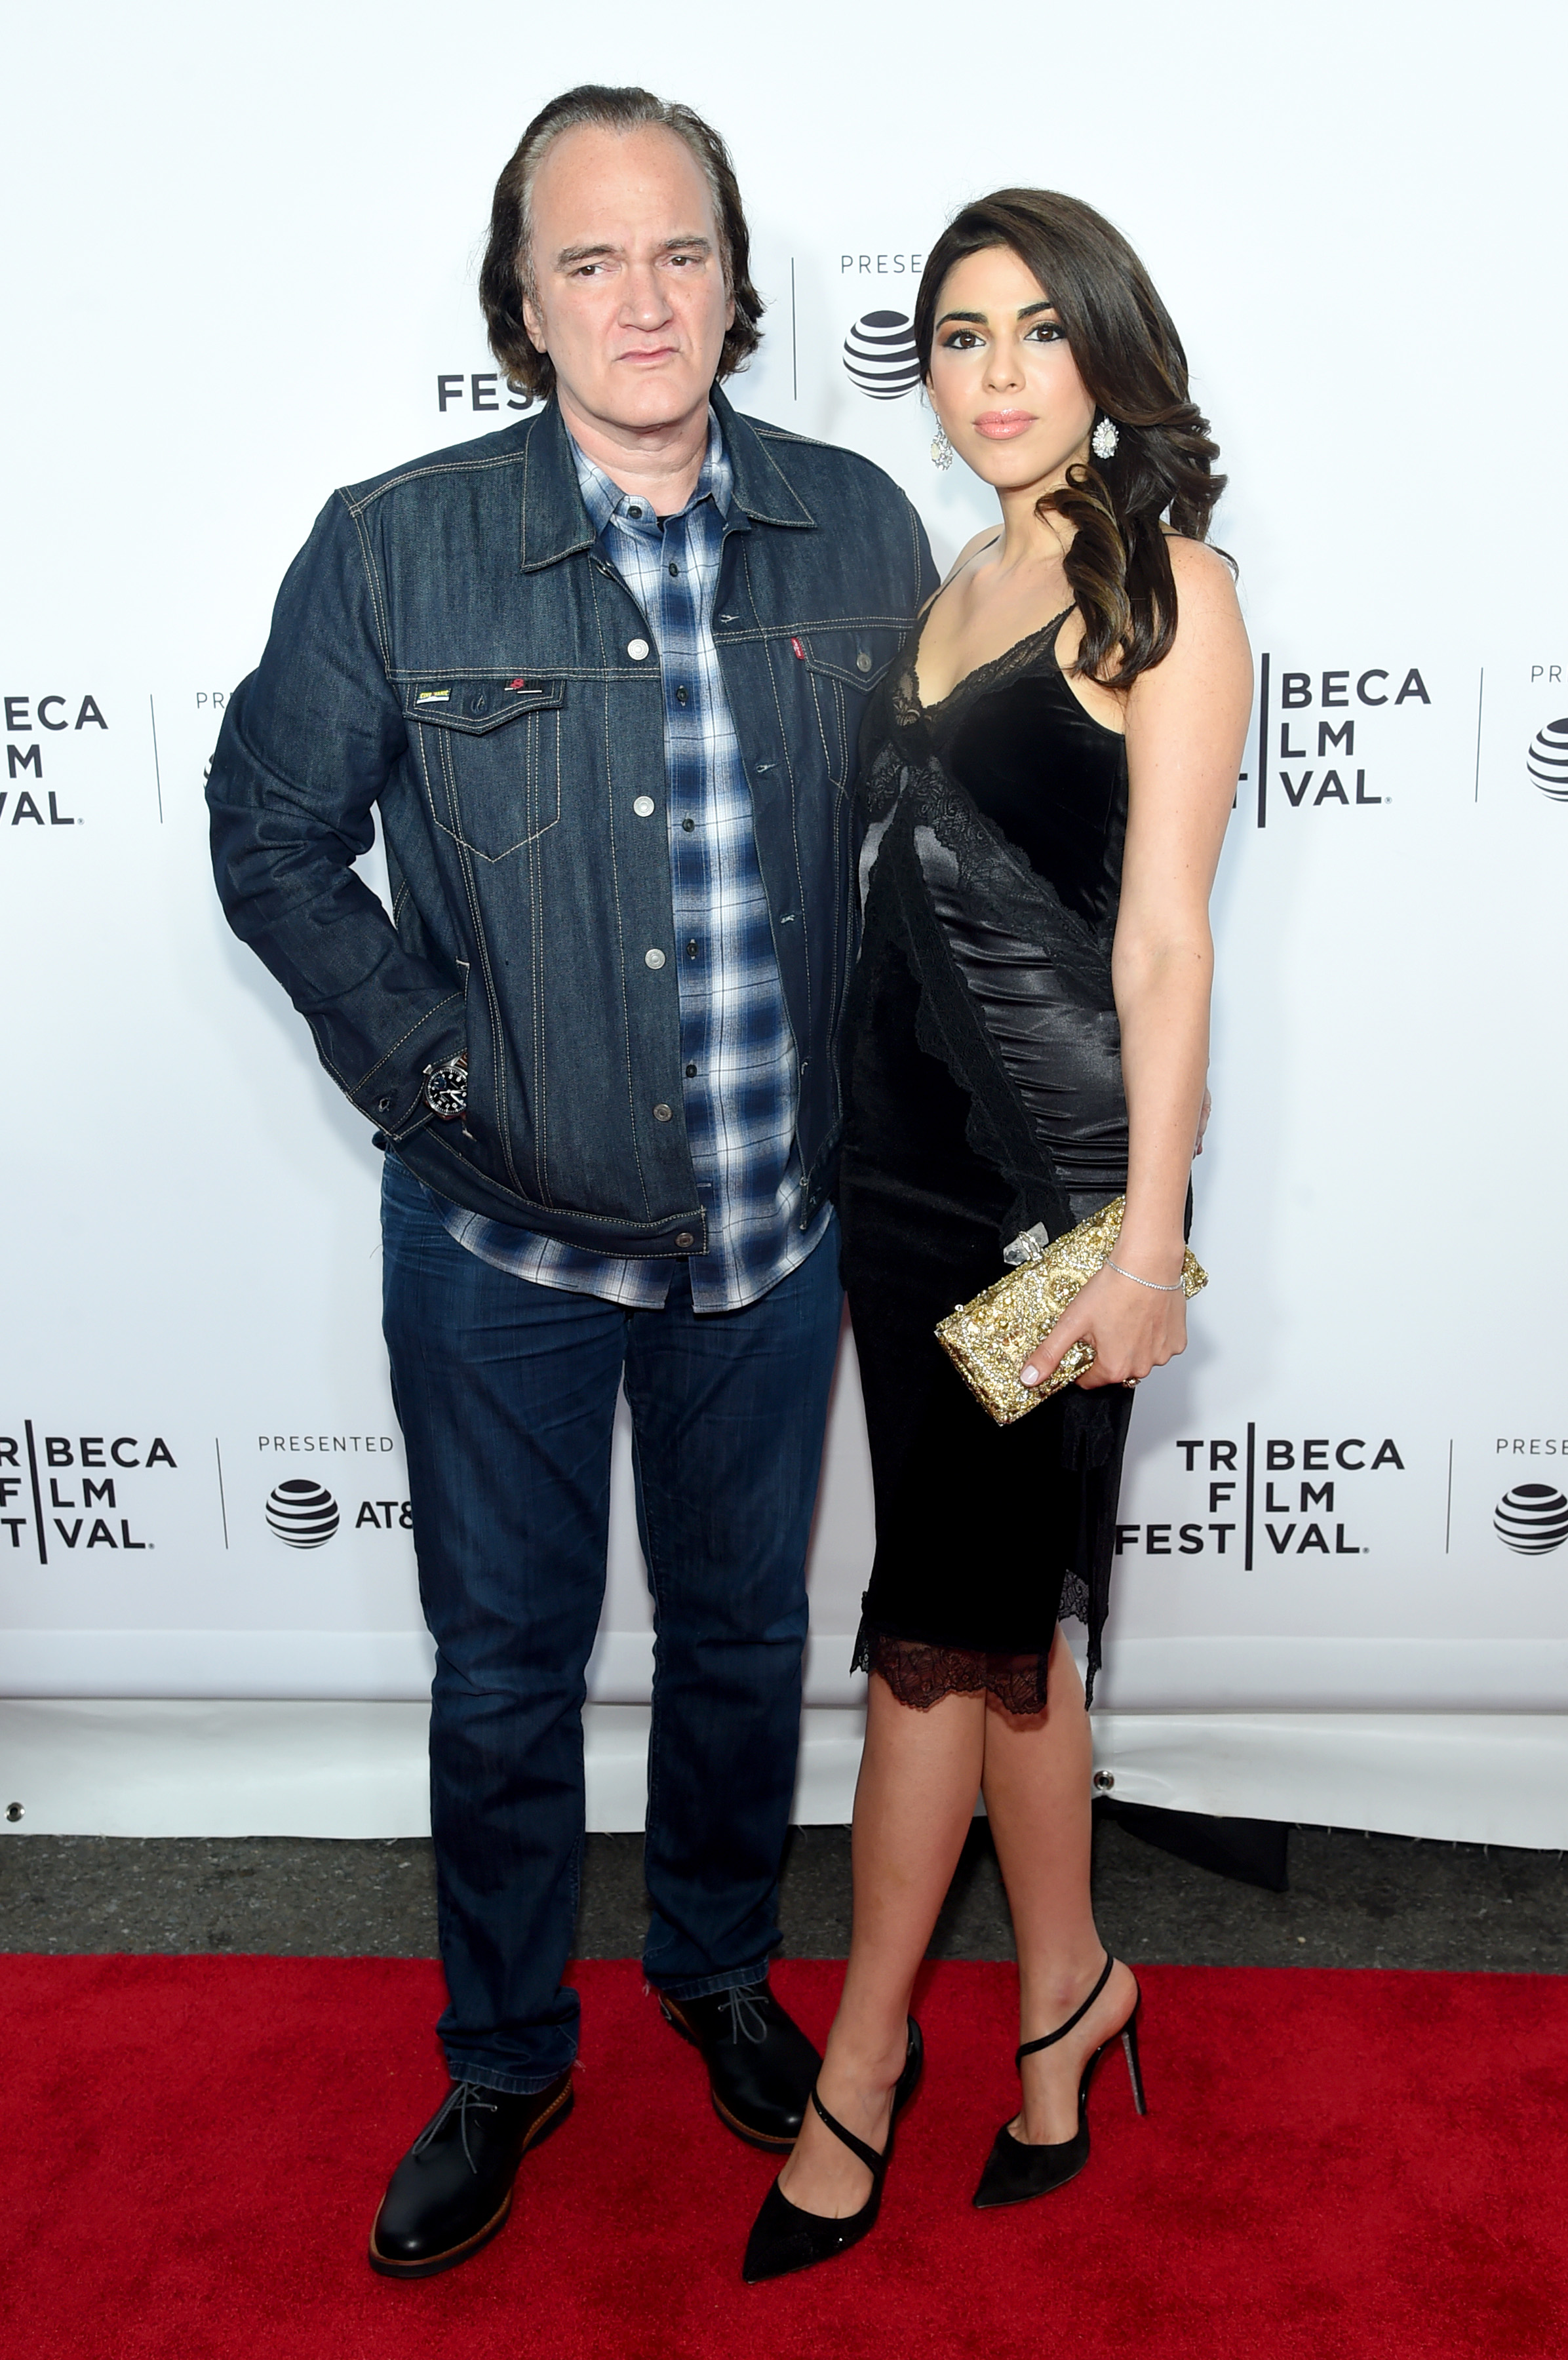 Director Quentin Tarantino and Singer/actress Daniella Pick attend the 'Reservoir Dogs' Screening during 2017 Tribeca Film Festival on April 28, 2017 in New York City. (Photo by Jamie McCarthy/Getty Images for Tribeca Film Festival)